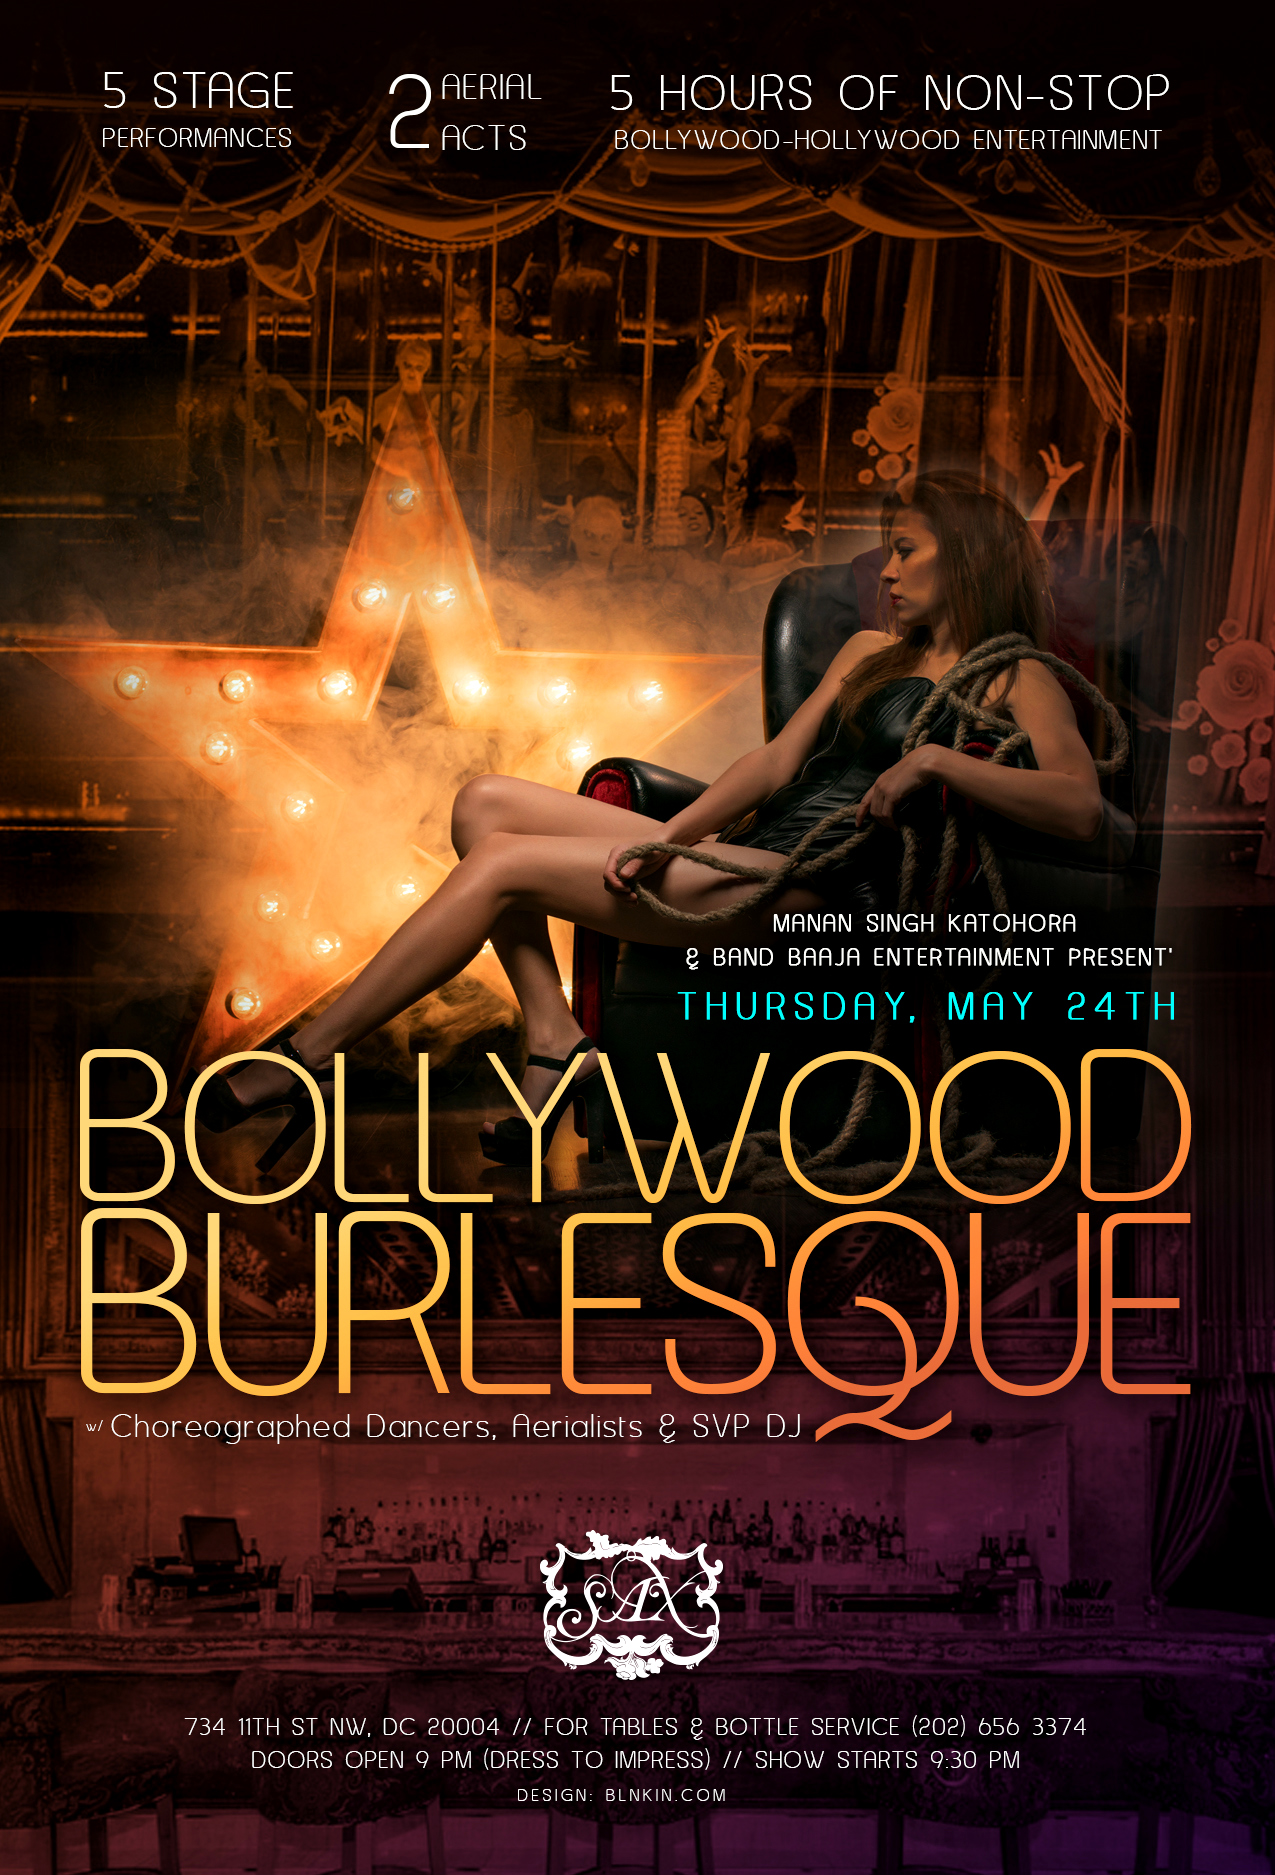 BOLLYWOOD HOLLYWOOD BURLESQUE with choreographed dancers & aerialists and SVP DJ